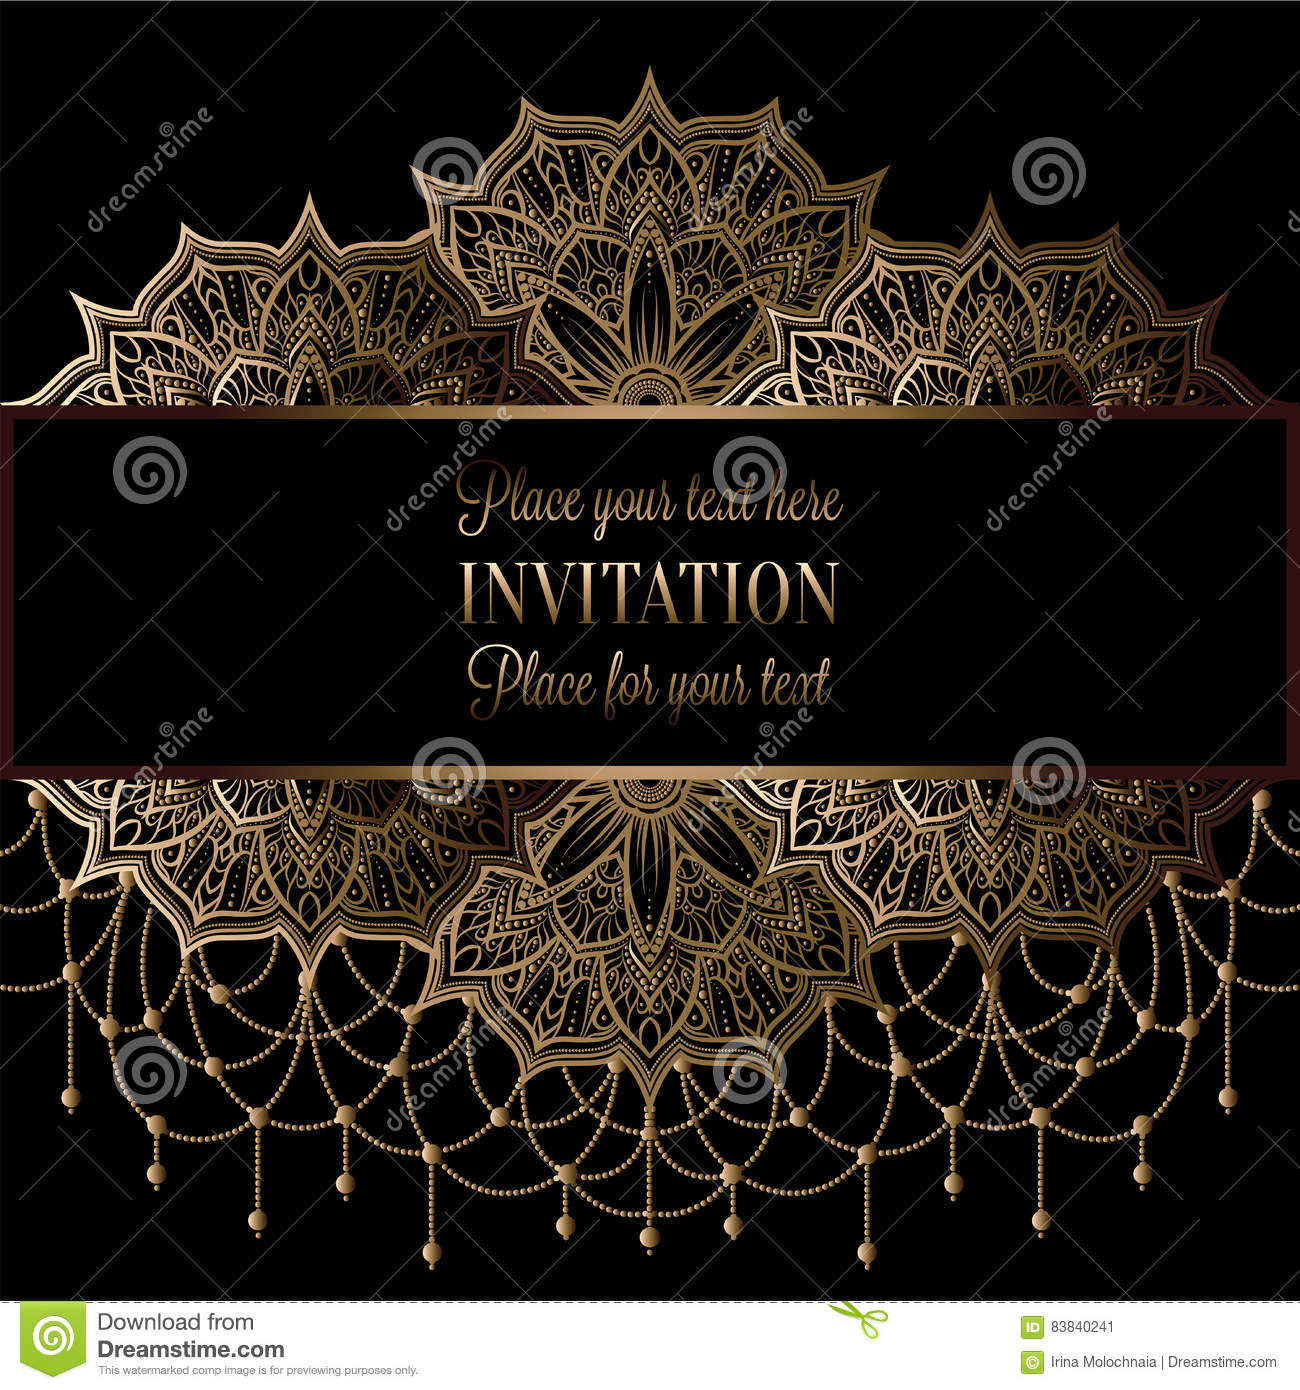 Wedding Invitation Or Card Intricate Mandala With Beads Background Stock Vector Illustration Of Festive Ethnic 83840241